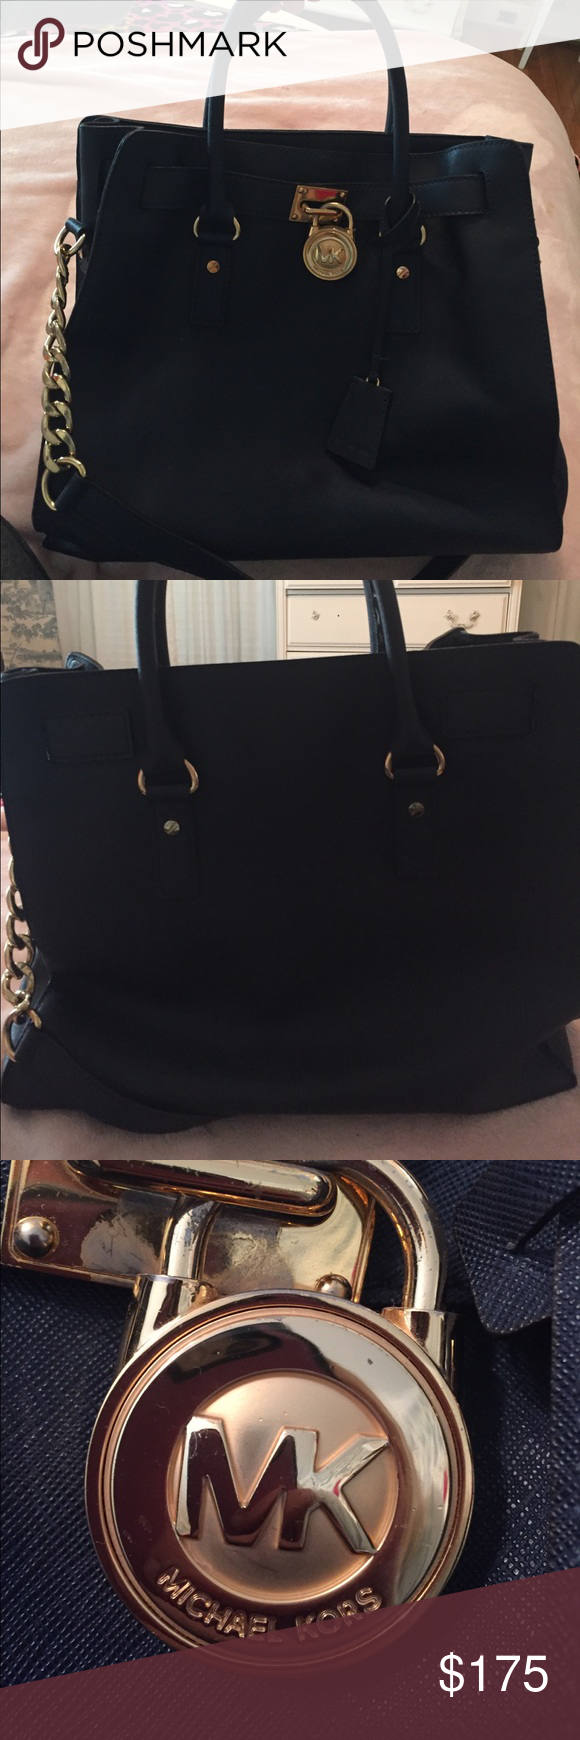 Michael Kors Hamilton purse Excellent condition navy Michael kors Hamilton. Very little wear on handles and hard ware. Tried to show best in photos. Offers welcome. Michael Kors Bags